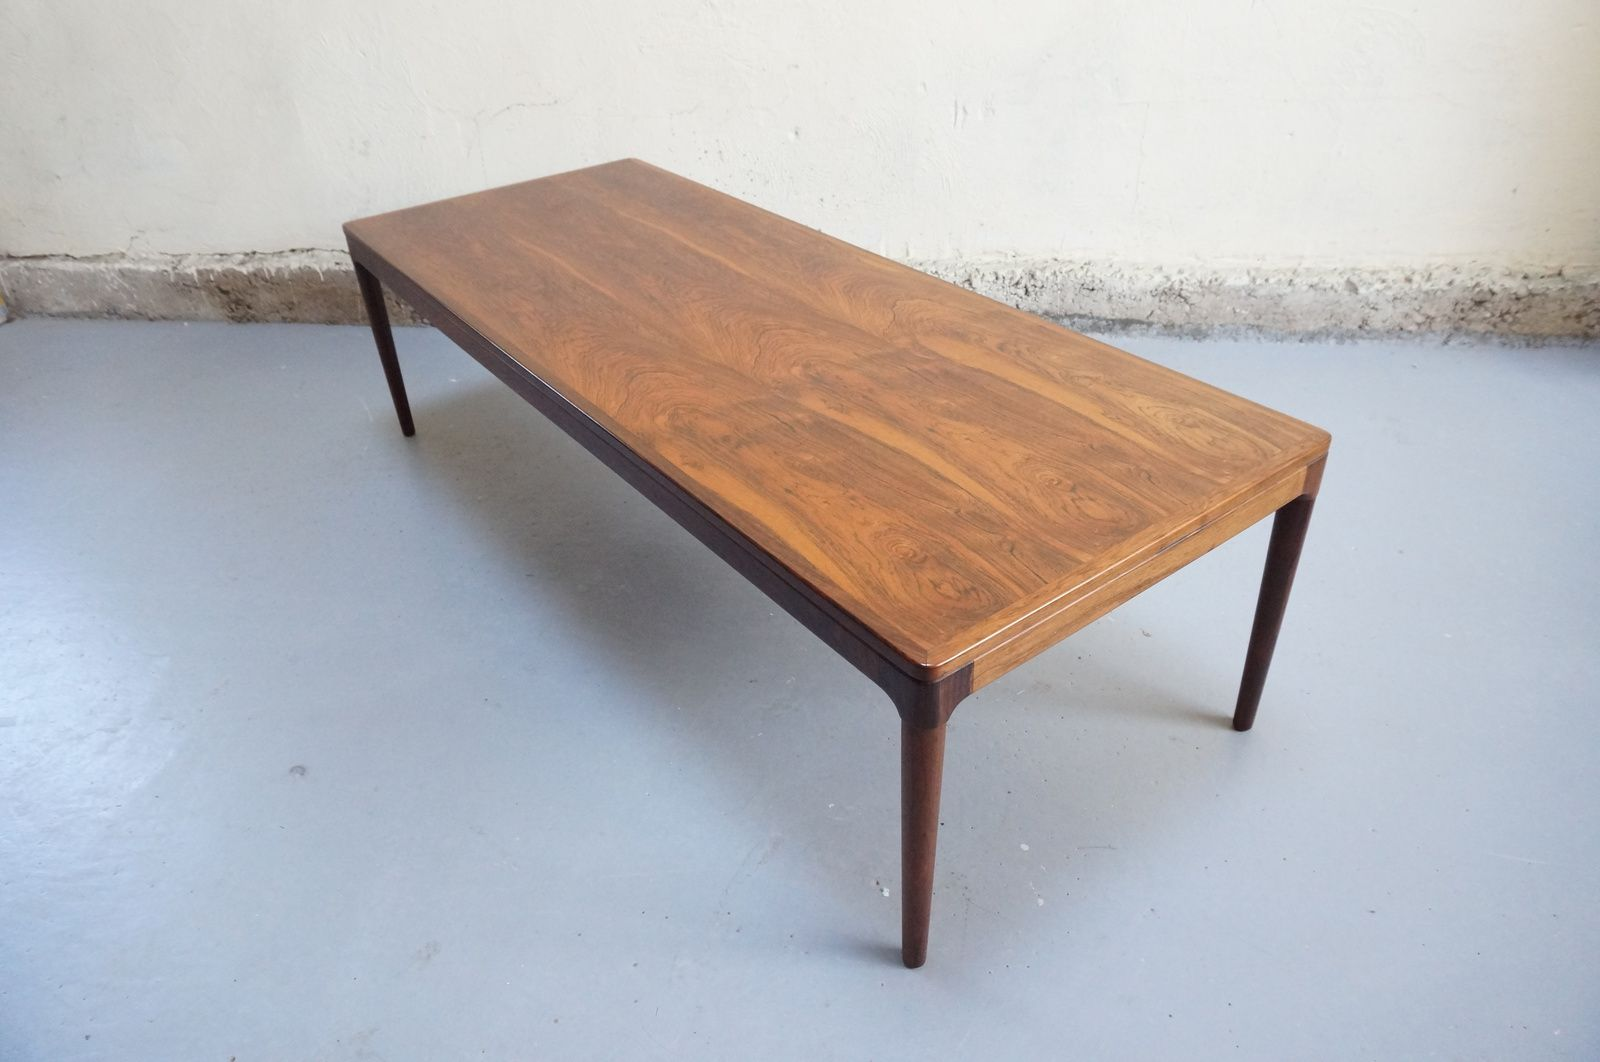 Table basse scandinave palissandre de rio salon design - Table basse palissandre ...